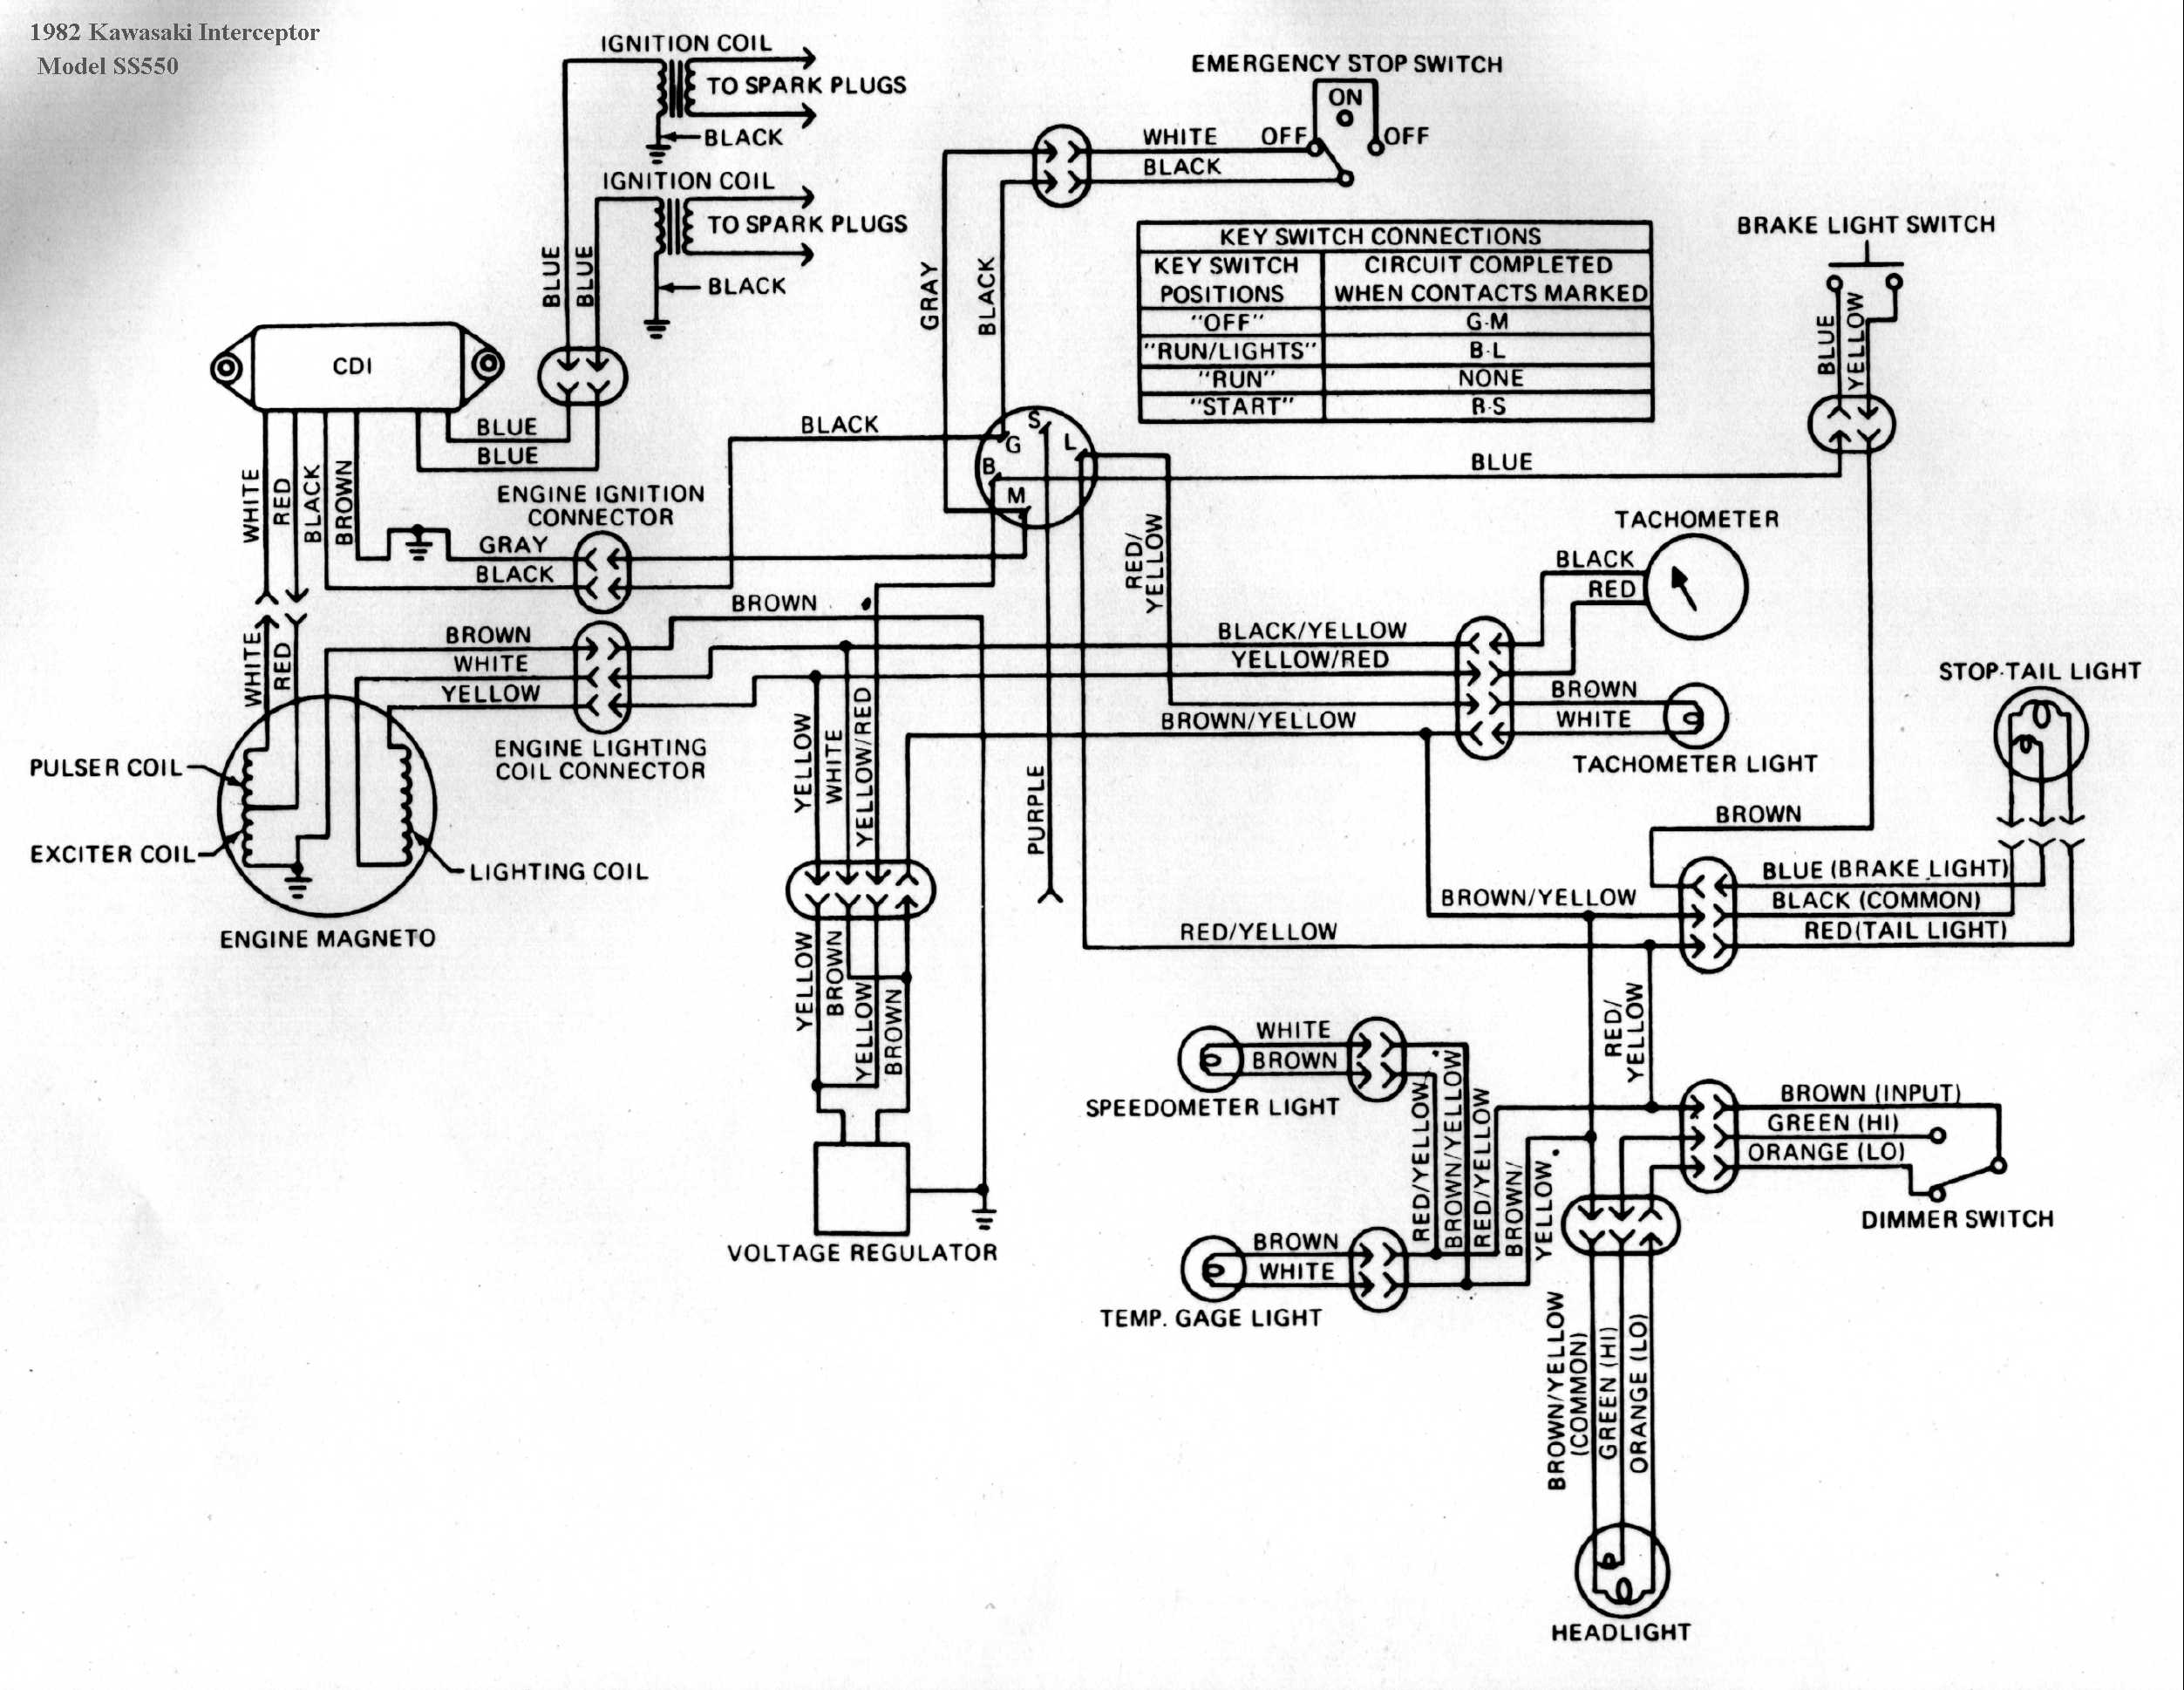 Outstanding Kawasaki 440 Wiring Diagram Basic Electronics Wiring Diagram Wiring Cloud Philuggs Outletorg